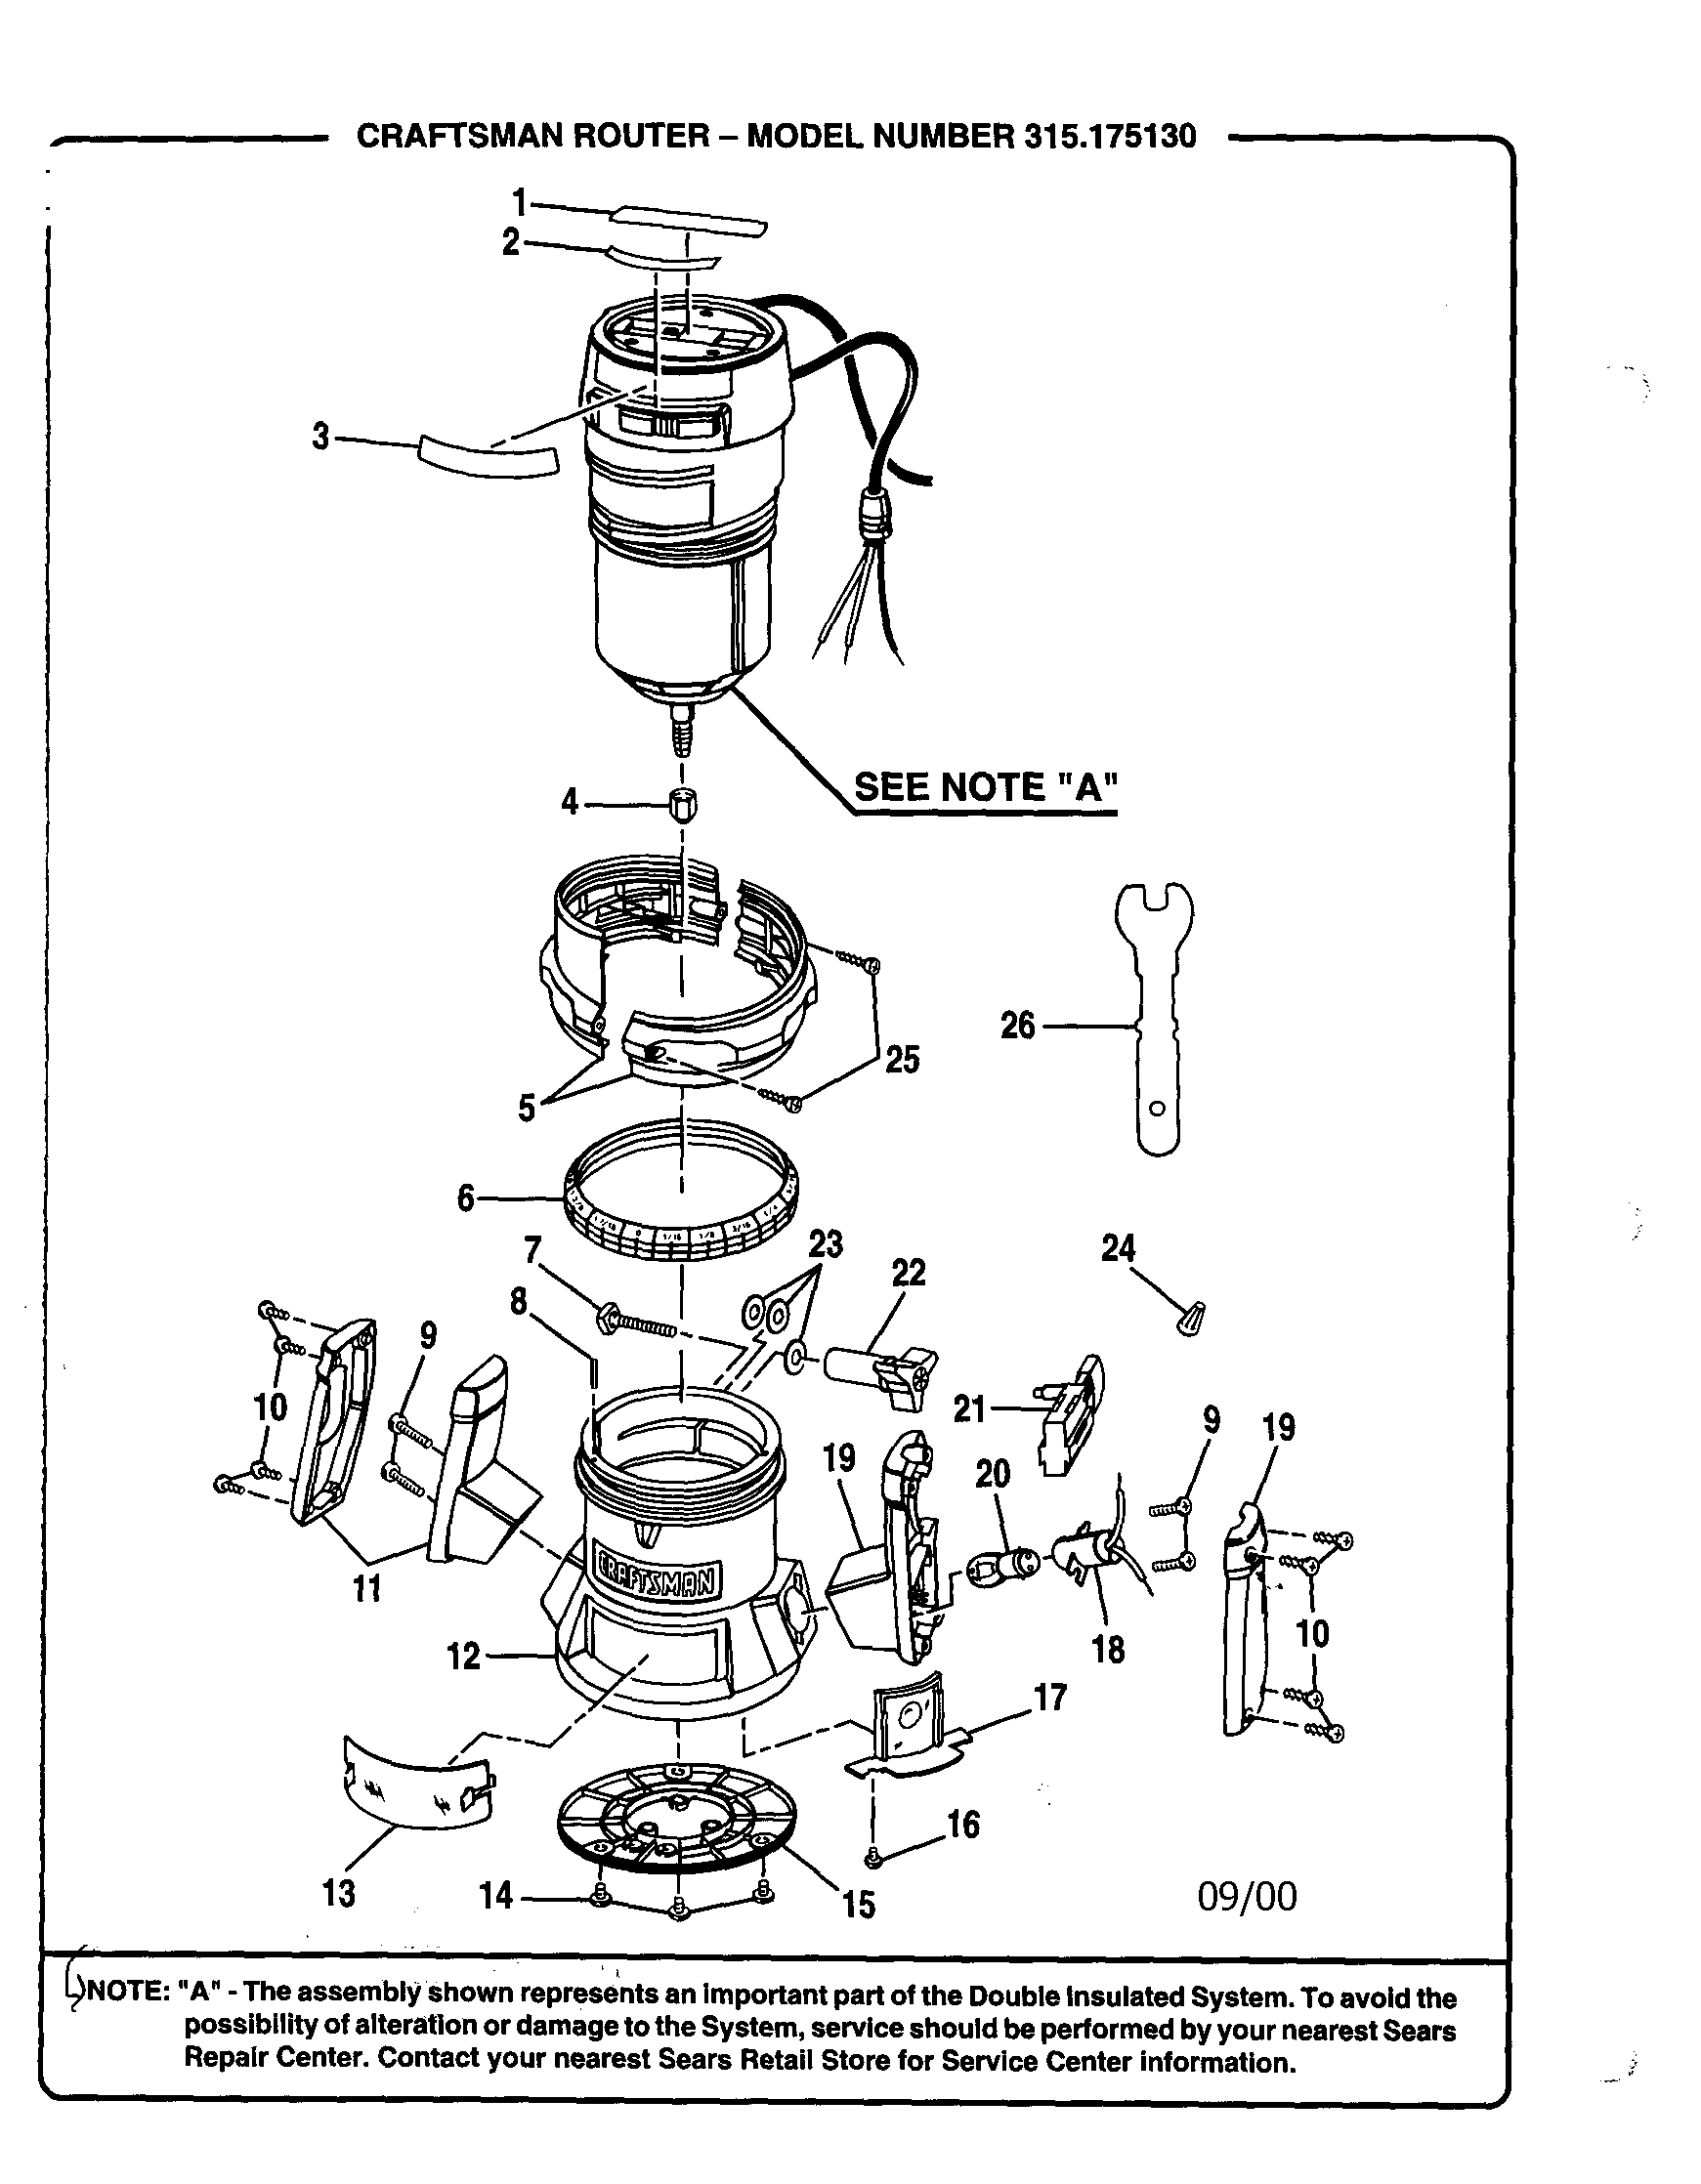 hight resolution of wiring craftsman 315175130 router diagram